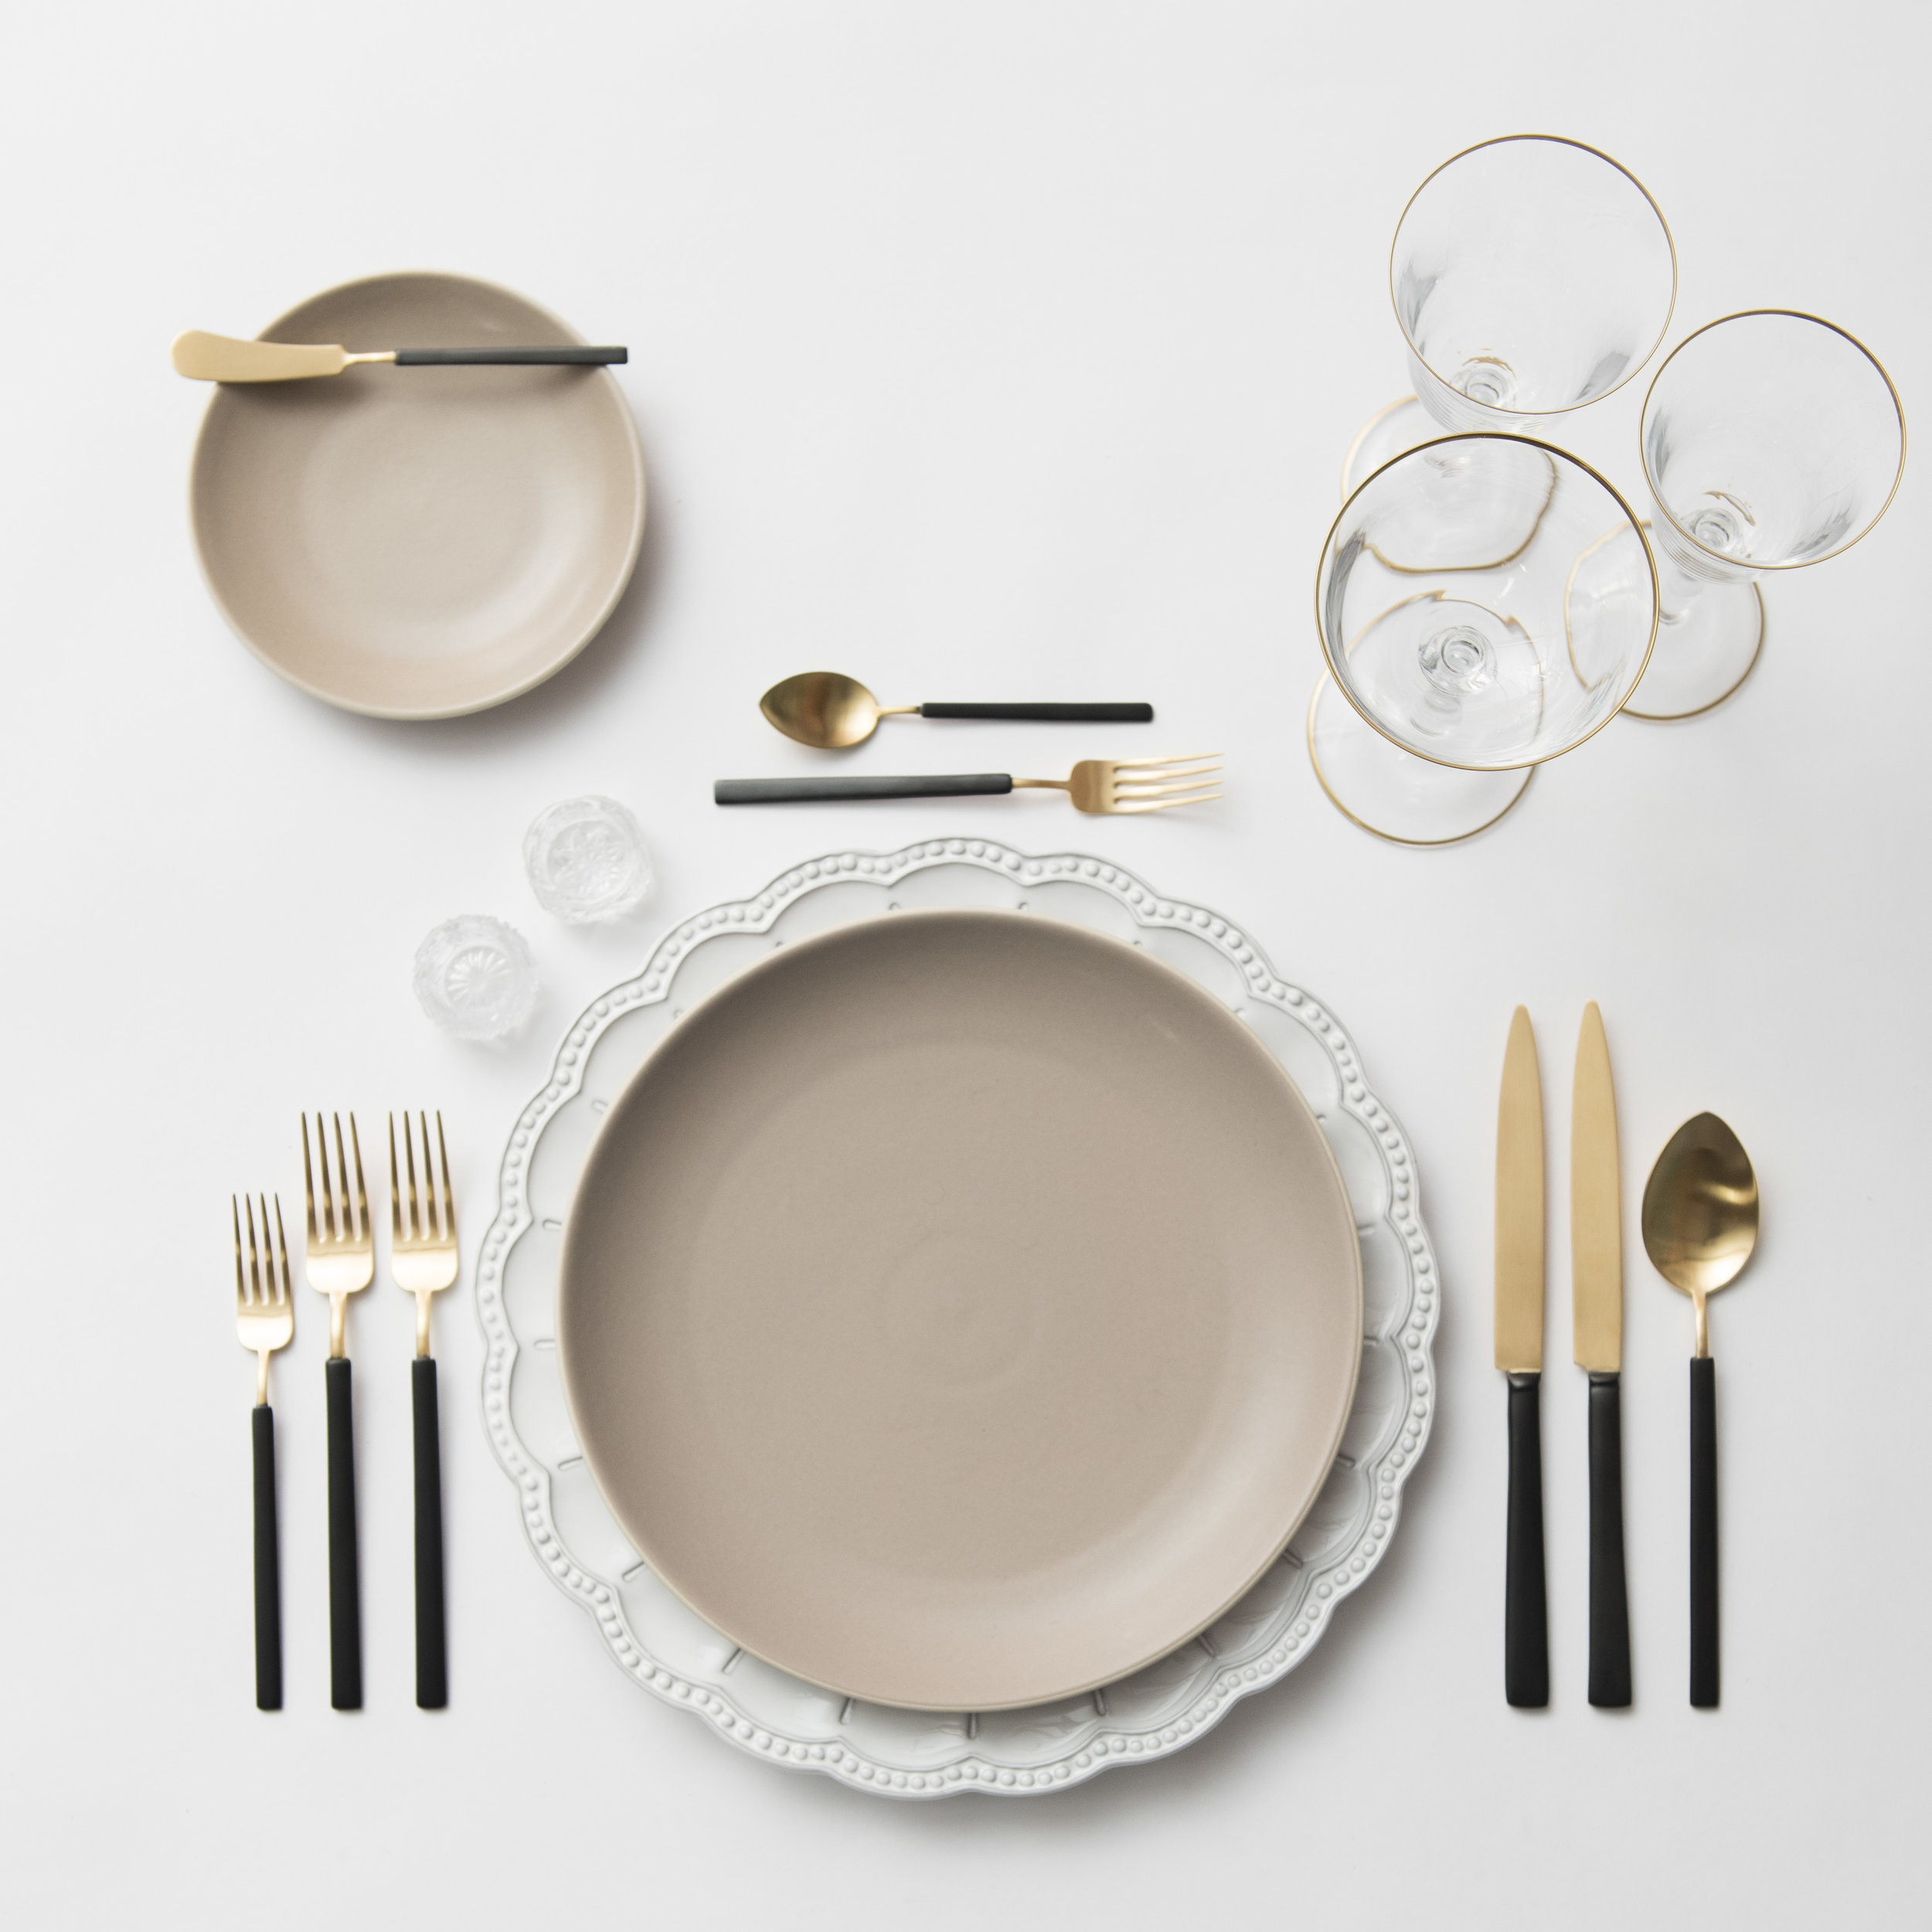 RENT: Signature Collection Chargers + Heath Ceramics in French Grey + Axel Flatware in Matte 24k Gold/Black + Chloe 24k Gold Rimmed Stemware + Antique Crystal Salt Cellars  SHOP: Chloe 24k Gold Rimmed Stemware